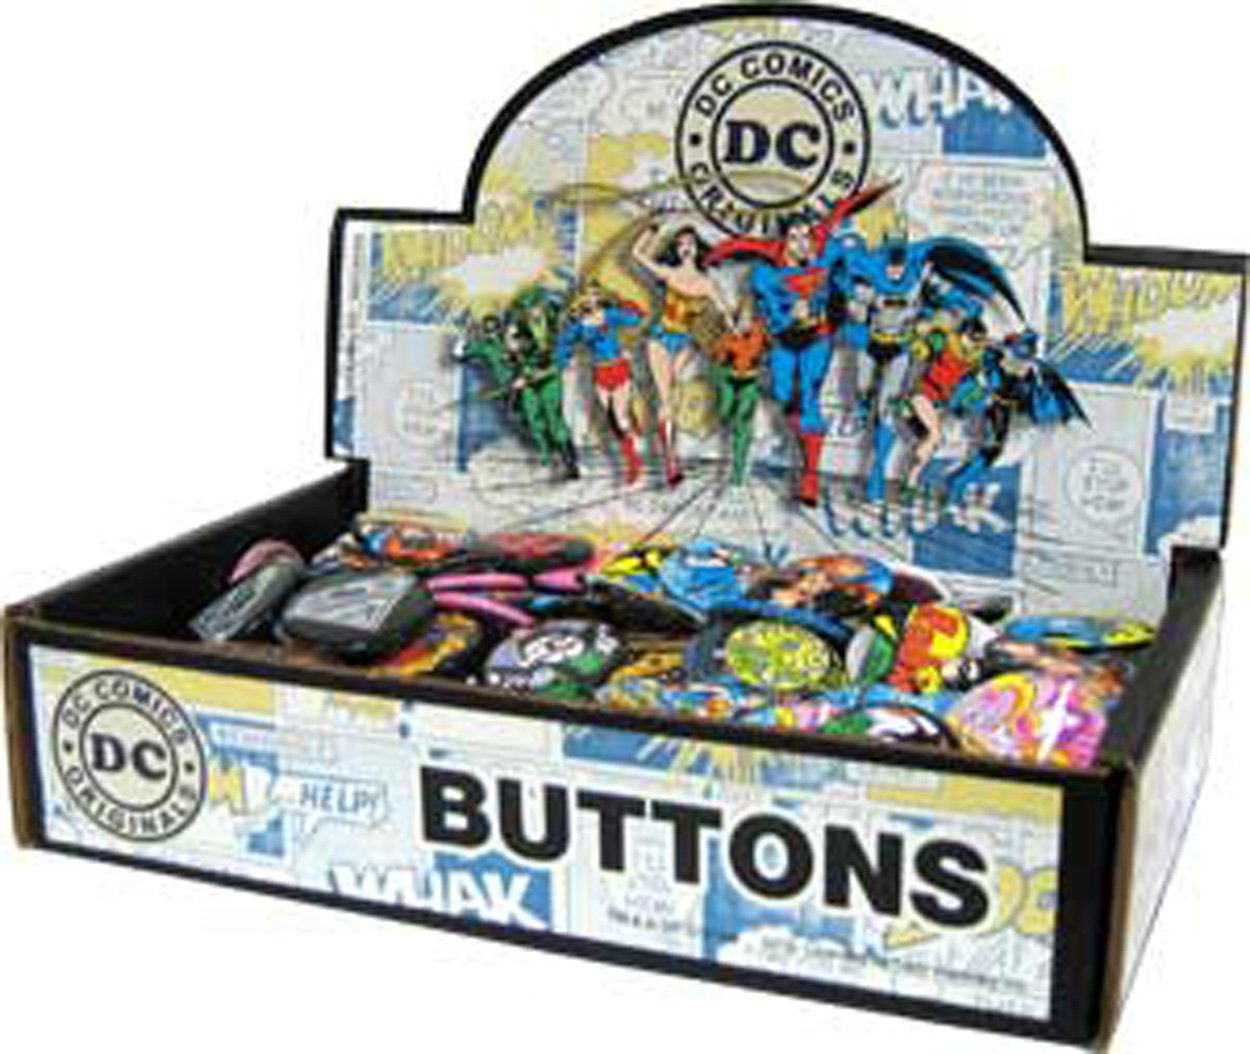 Button set DC Comics Originals Countertop Display Box Assorted Loose Buttons, 144-Piece by Button set (Image #1)